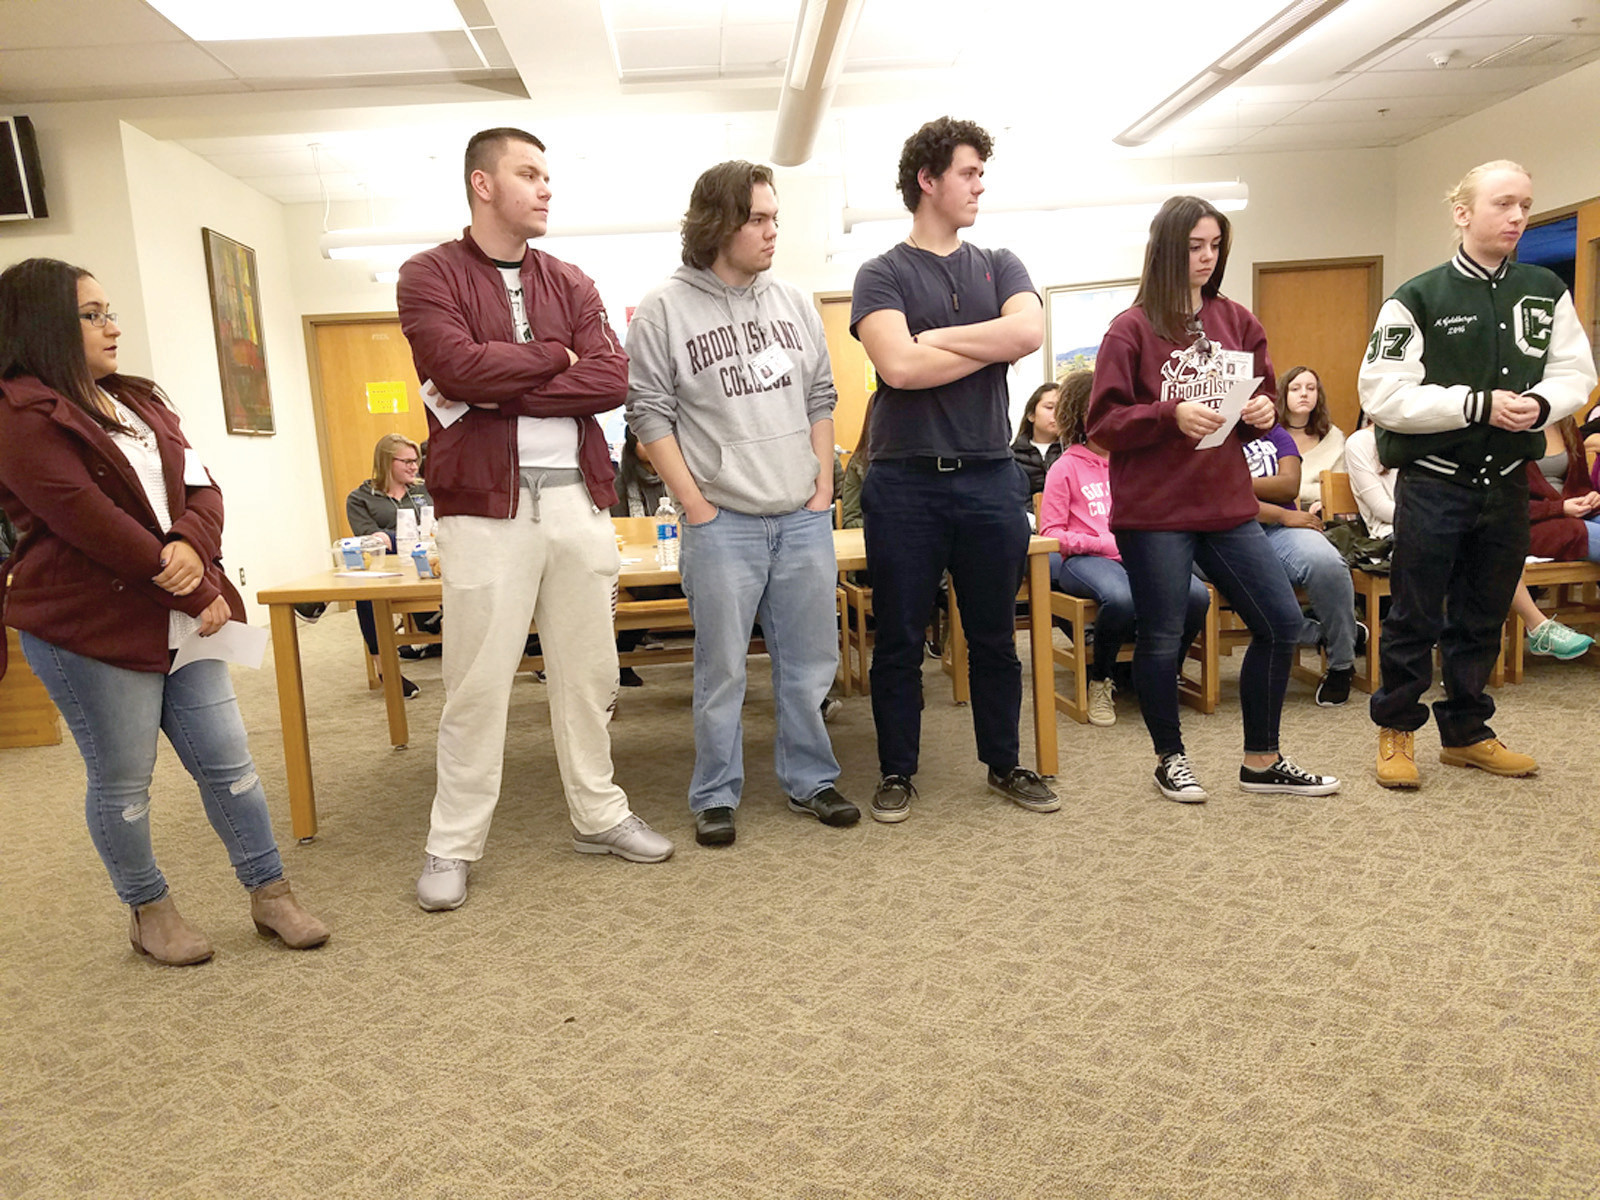 life after east cranston herald grads share experience seniors